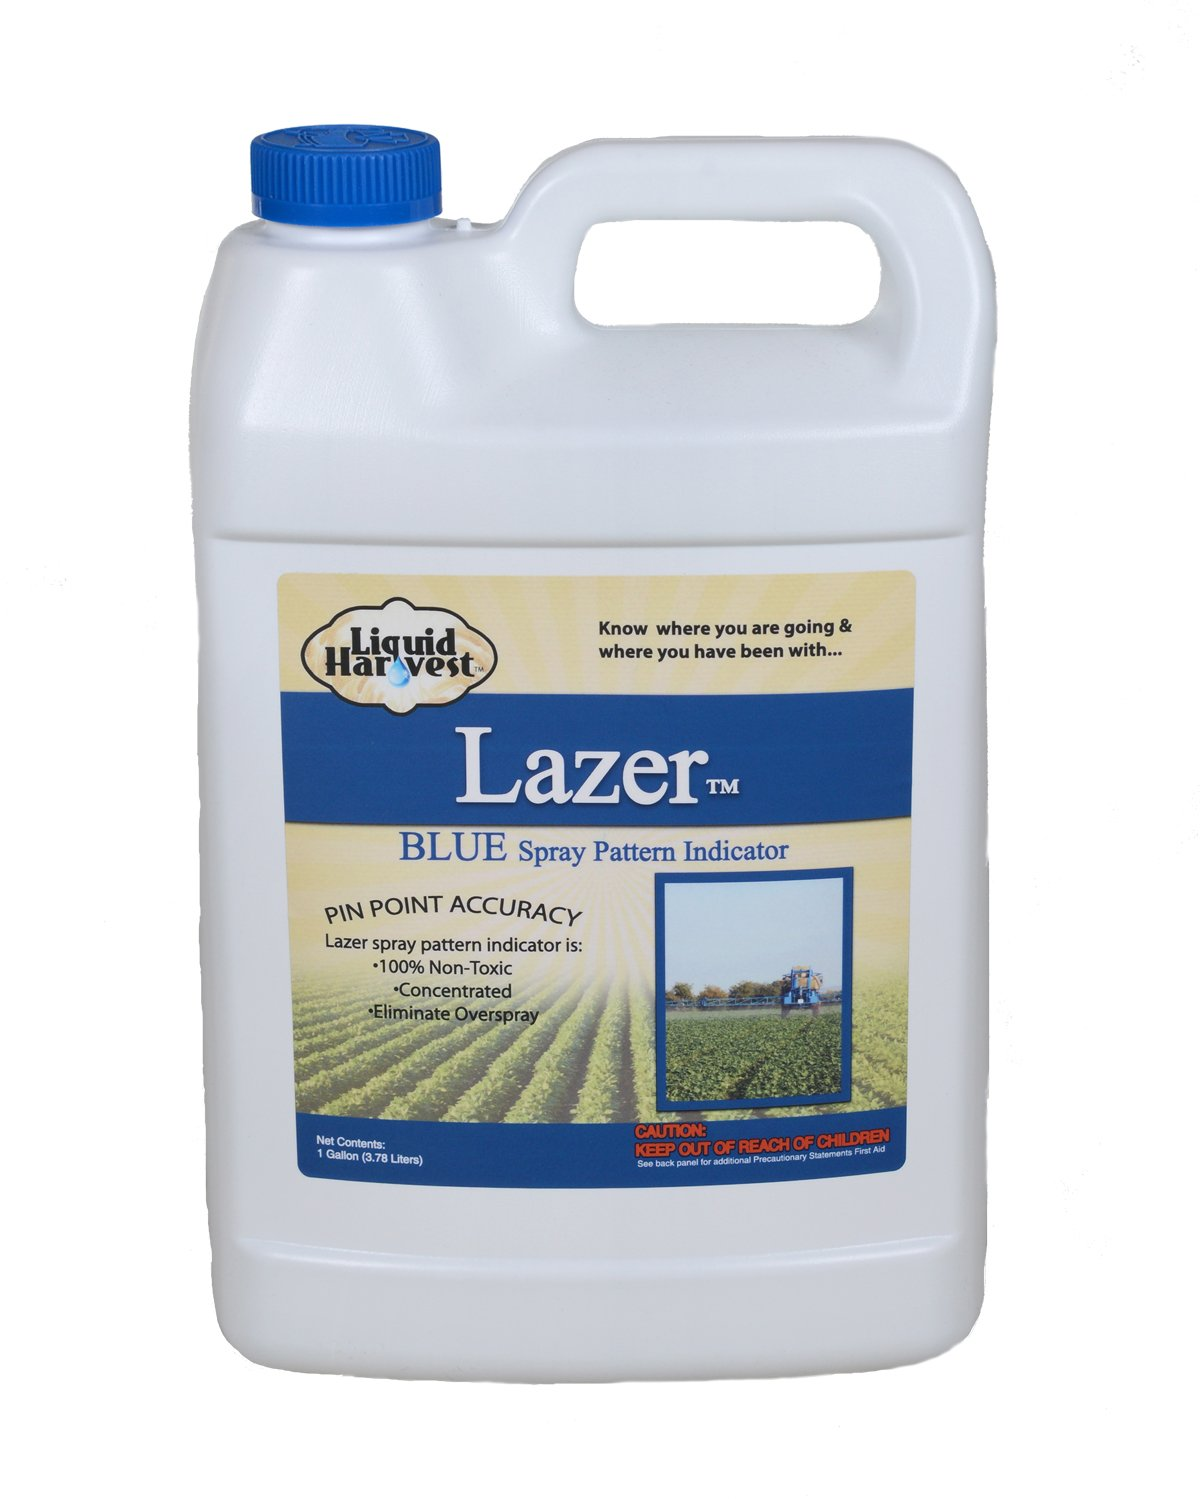 Liquid Harvest Lazer Blue Concentrated Spray Pattern Indicator - 1 Gallon (128 Ounces) - Perfect Weed Spray Dye, Herbicide Dye, Fertilizer Marking Dye, Turf Mark and Blue Herbicide Marker by Sanco Industries